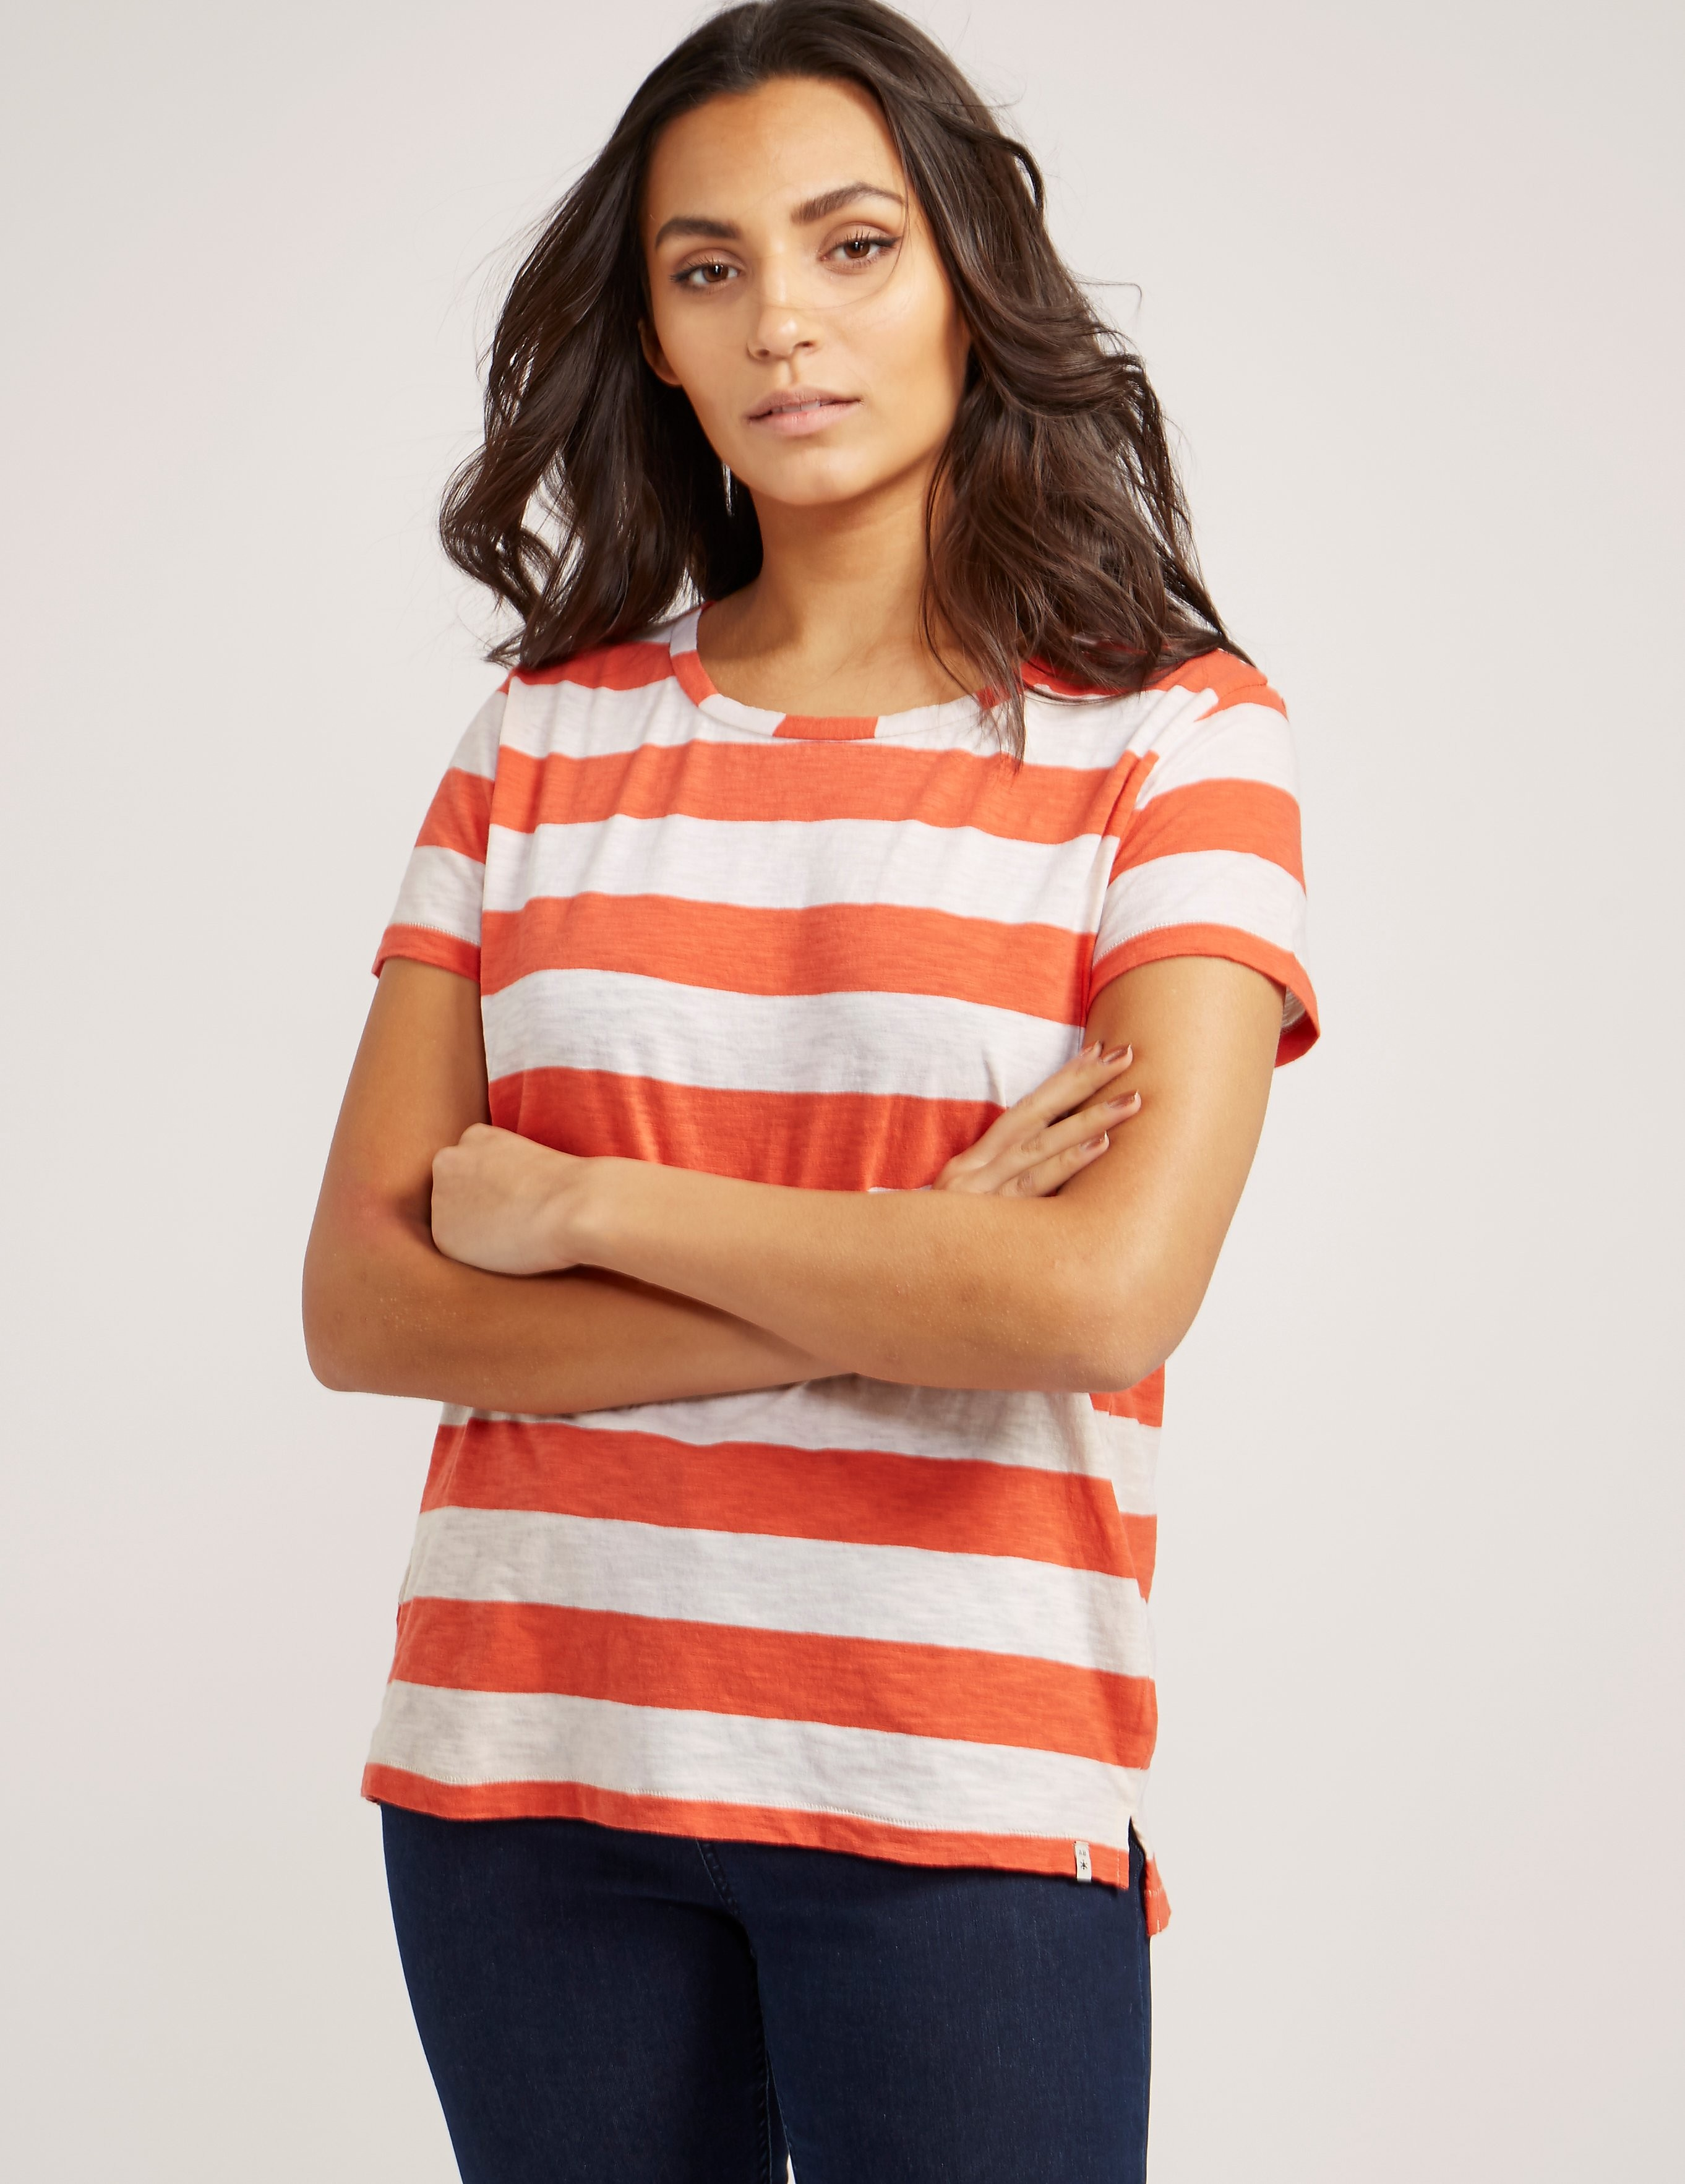 Maison Scotch Coral Stripe Short Sleeve t-Shirt